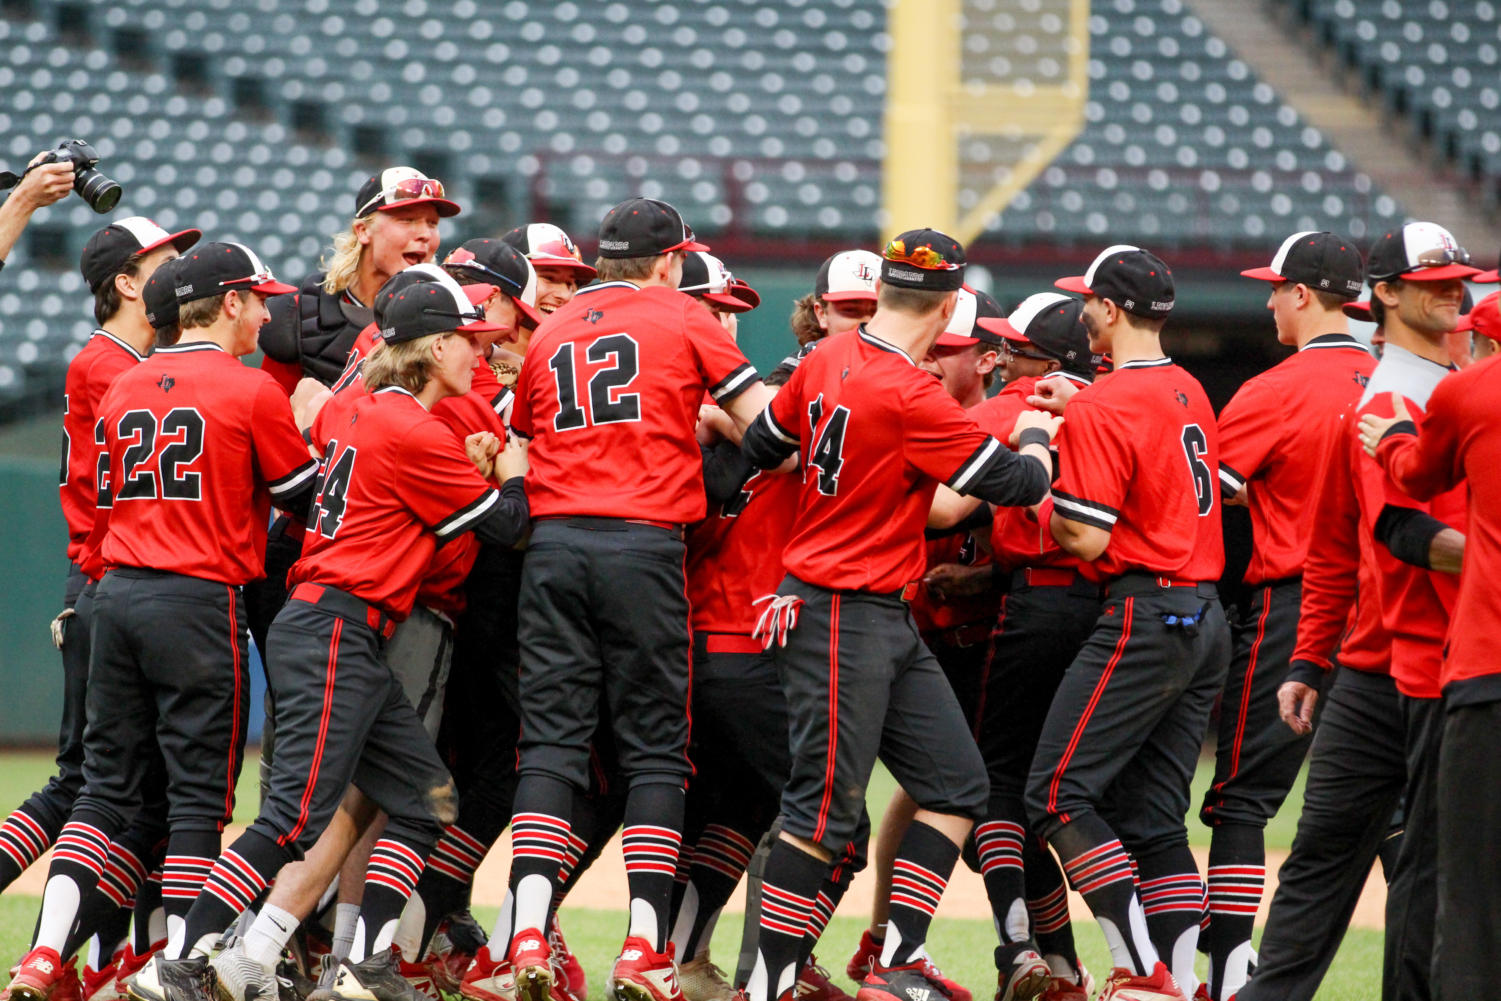 The+baseball+team+comes+together+in+the+middle+of+Globe+Life+Park+to+celebrate+their+playoff+win+against+Highland+Park.+The+Leopards+will+compete+against+Frisco+Lone+Star+in+their+round+three+series+of+games.